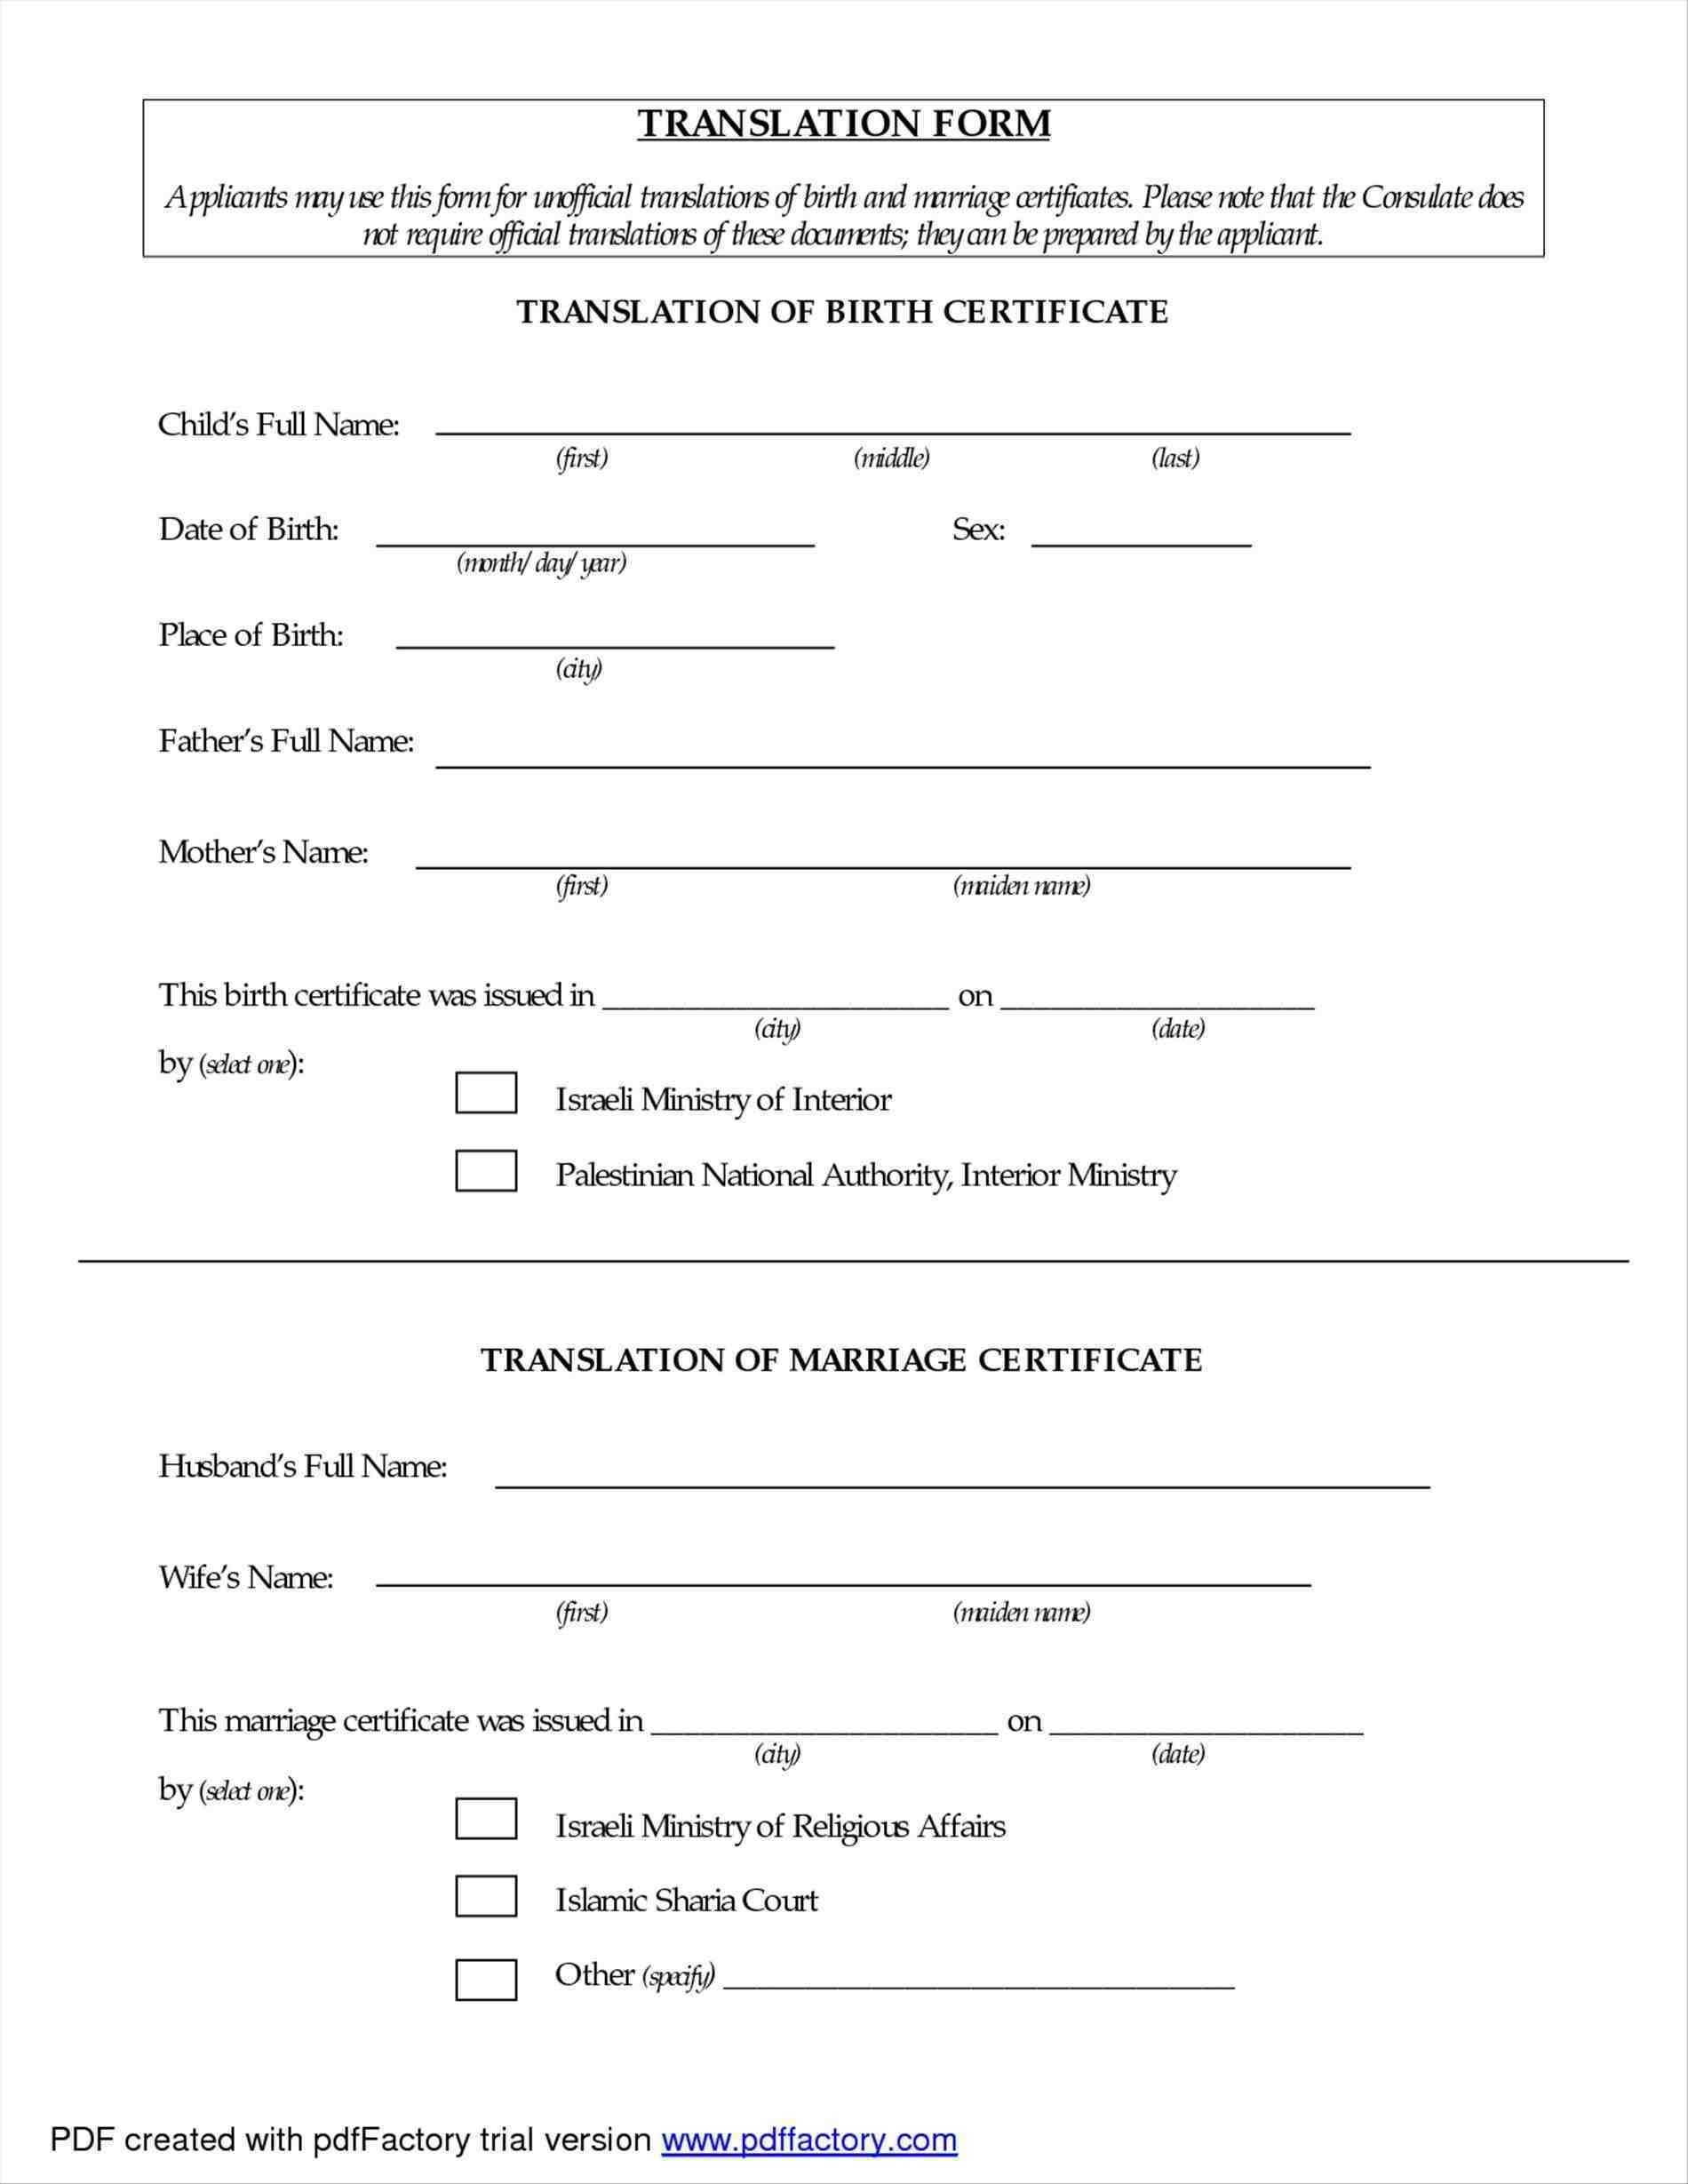 Mexican Marriage Certificate Template Brochure Templates In Marriage Certificate Translation From Spanish To English Template